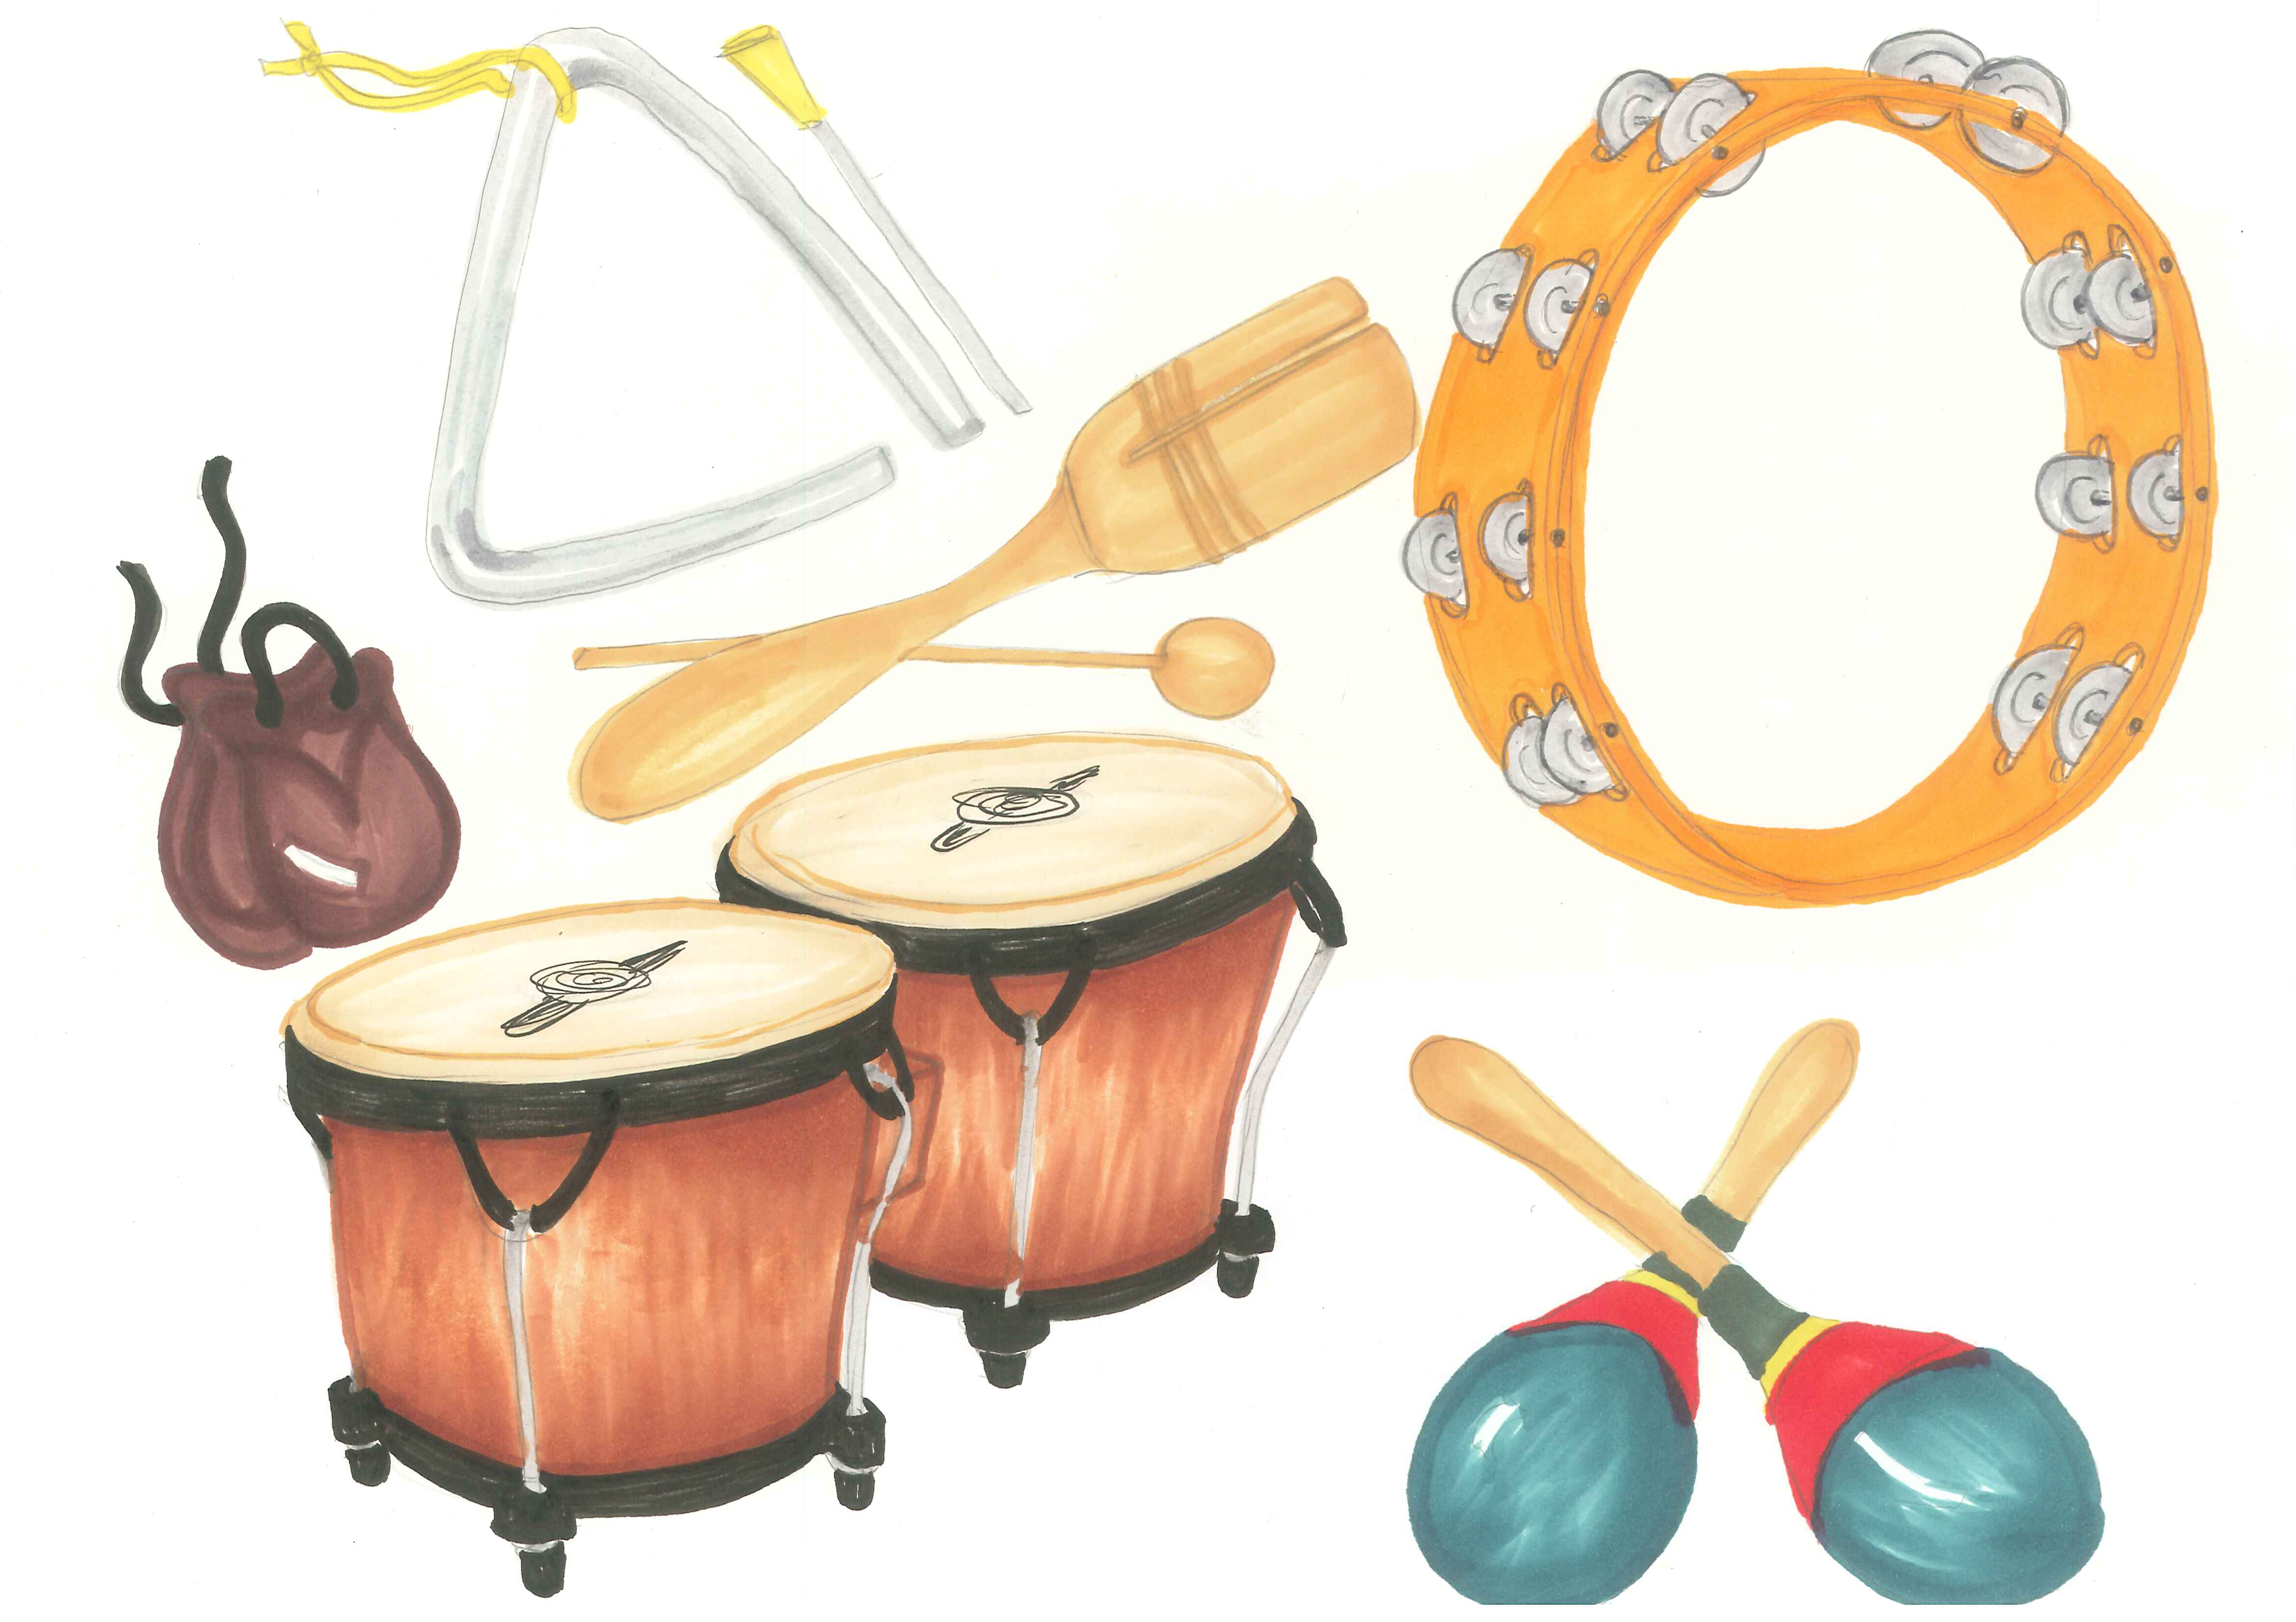 Musical instruments clipart.